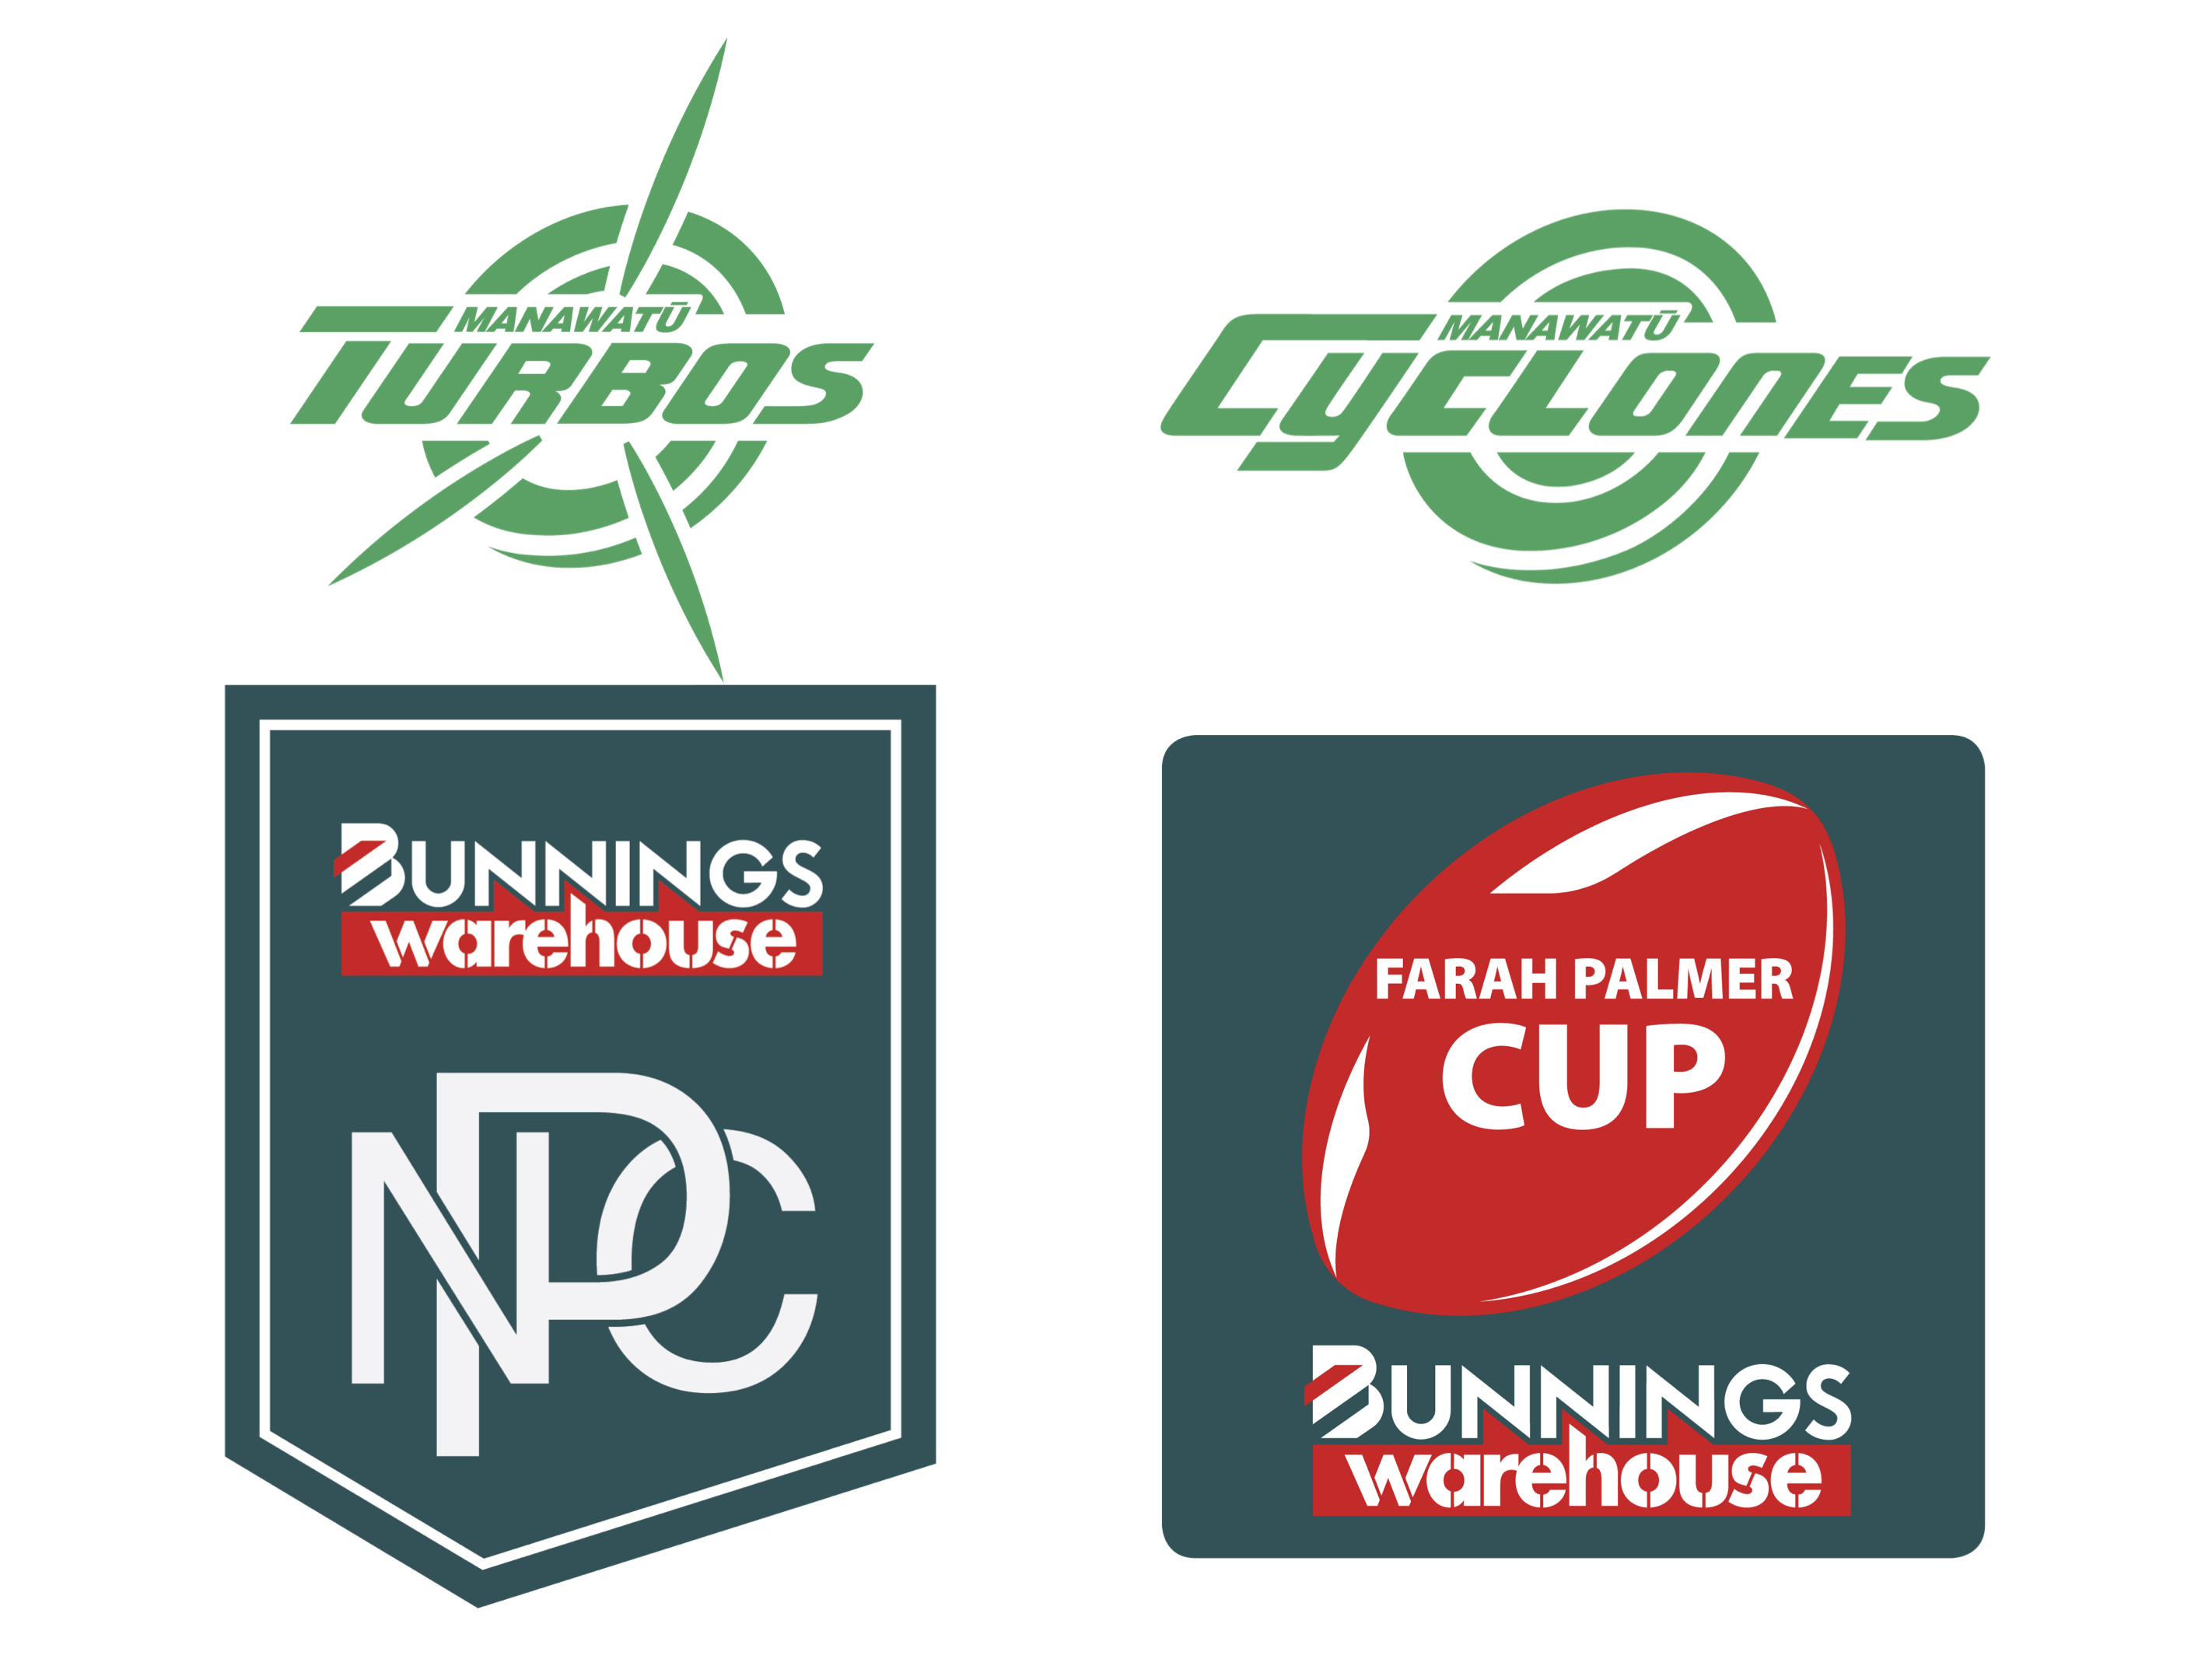 Manawatū Turbos and Manawatū Cyclones will compete in newly named competitions in 2021